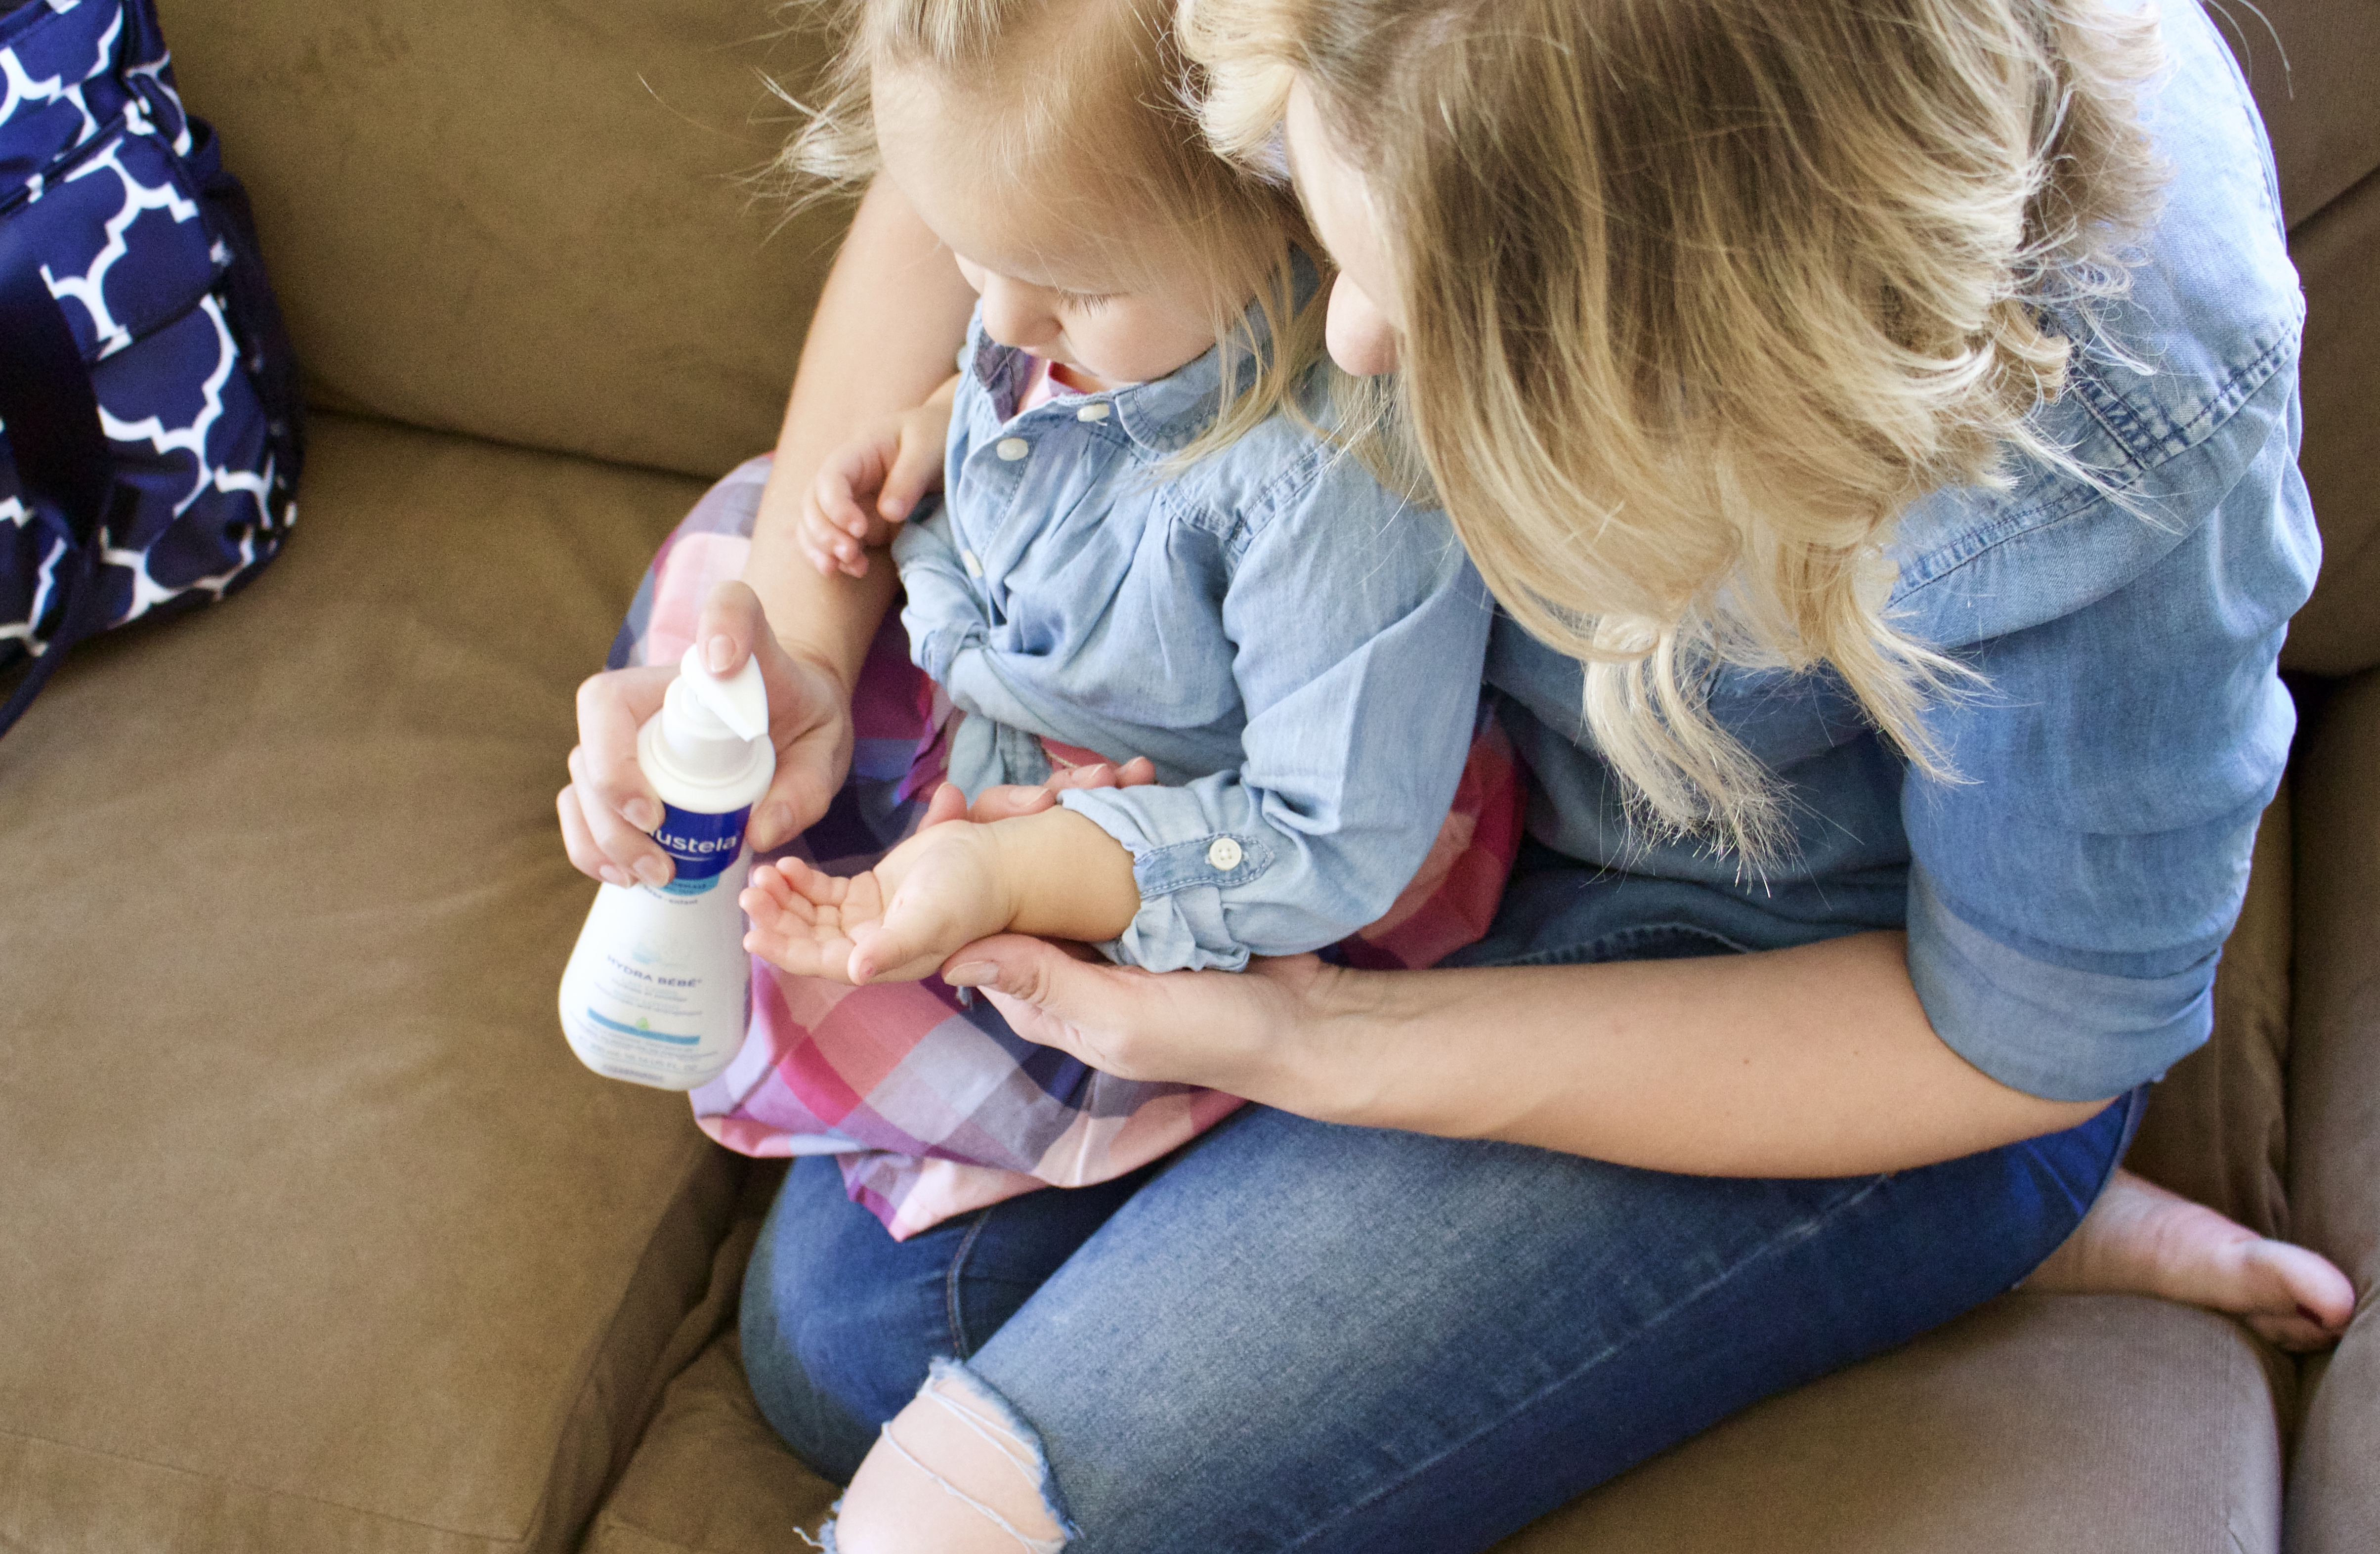 Mustela baby lotion review